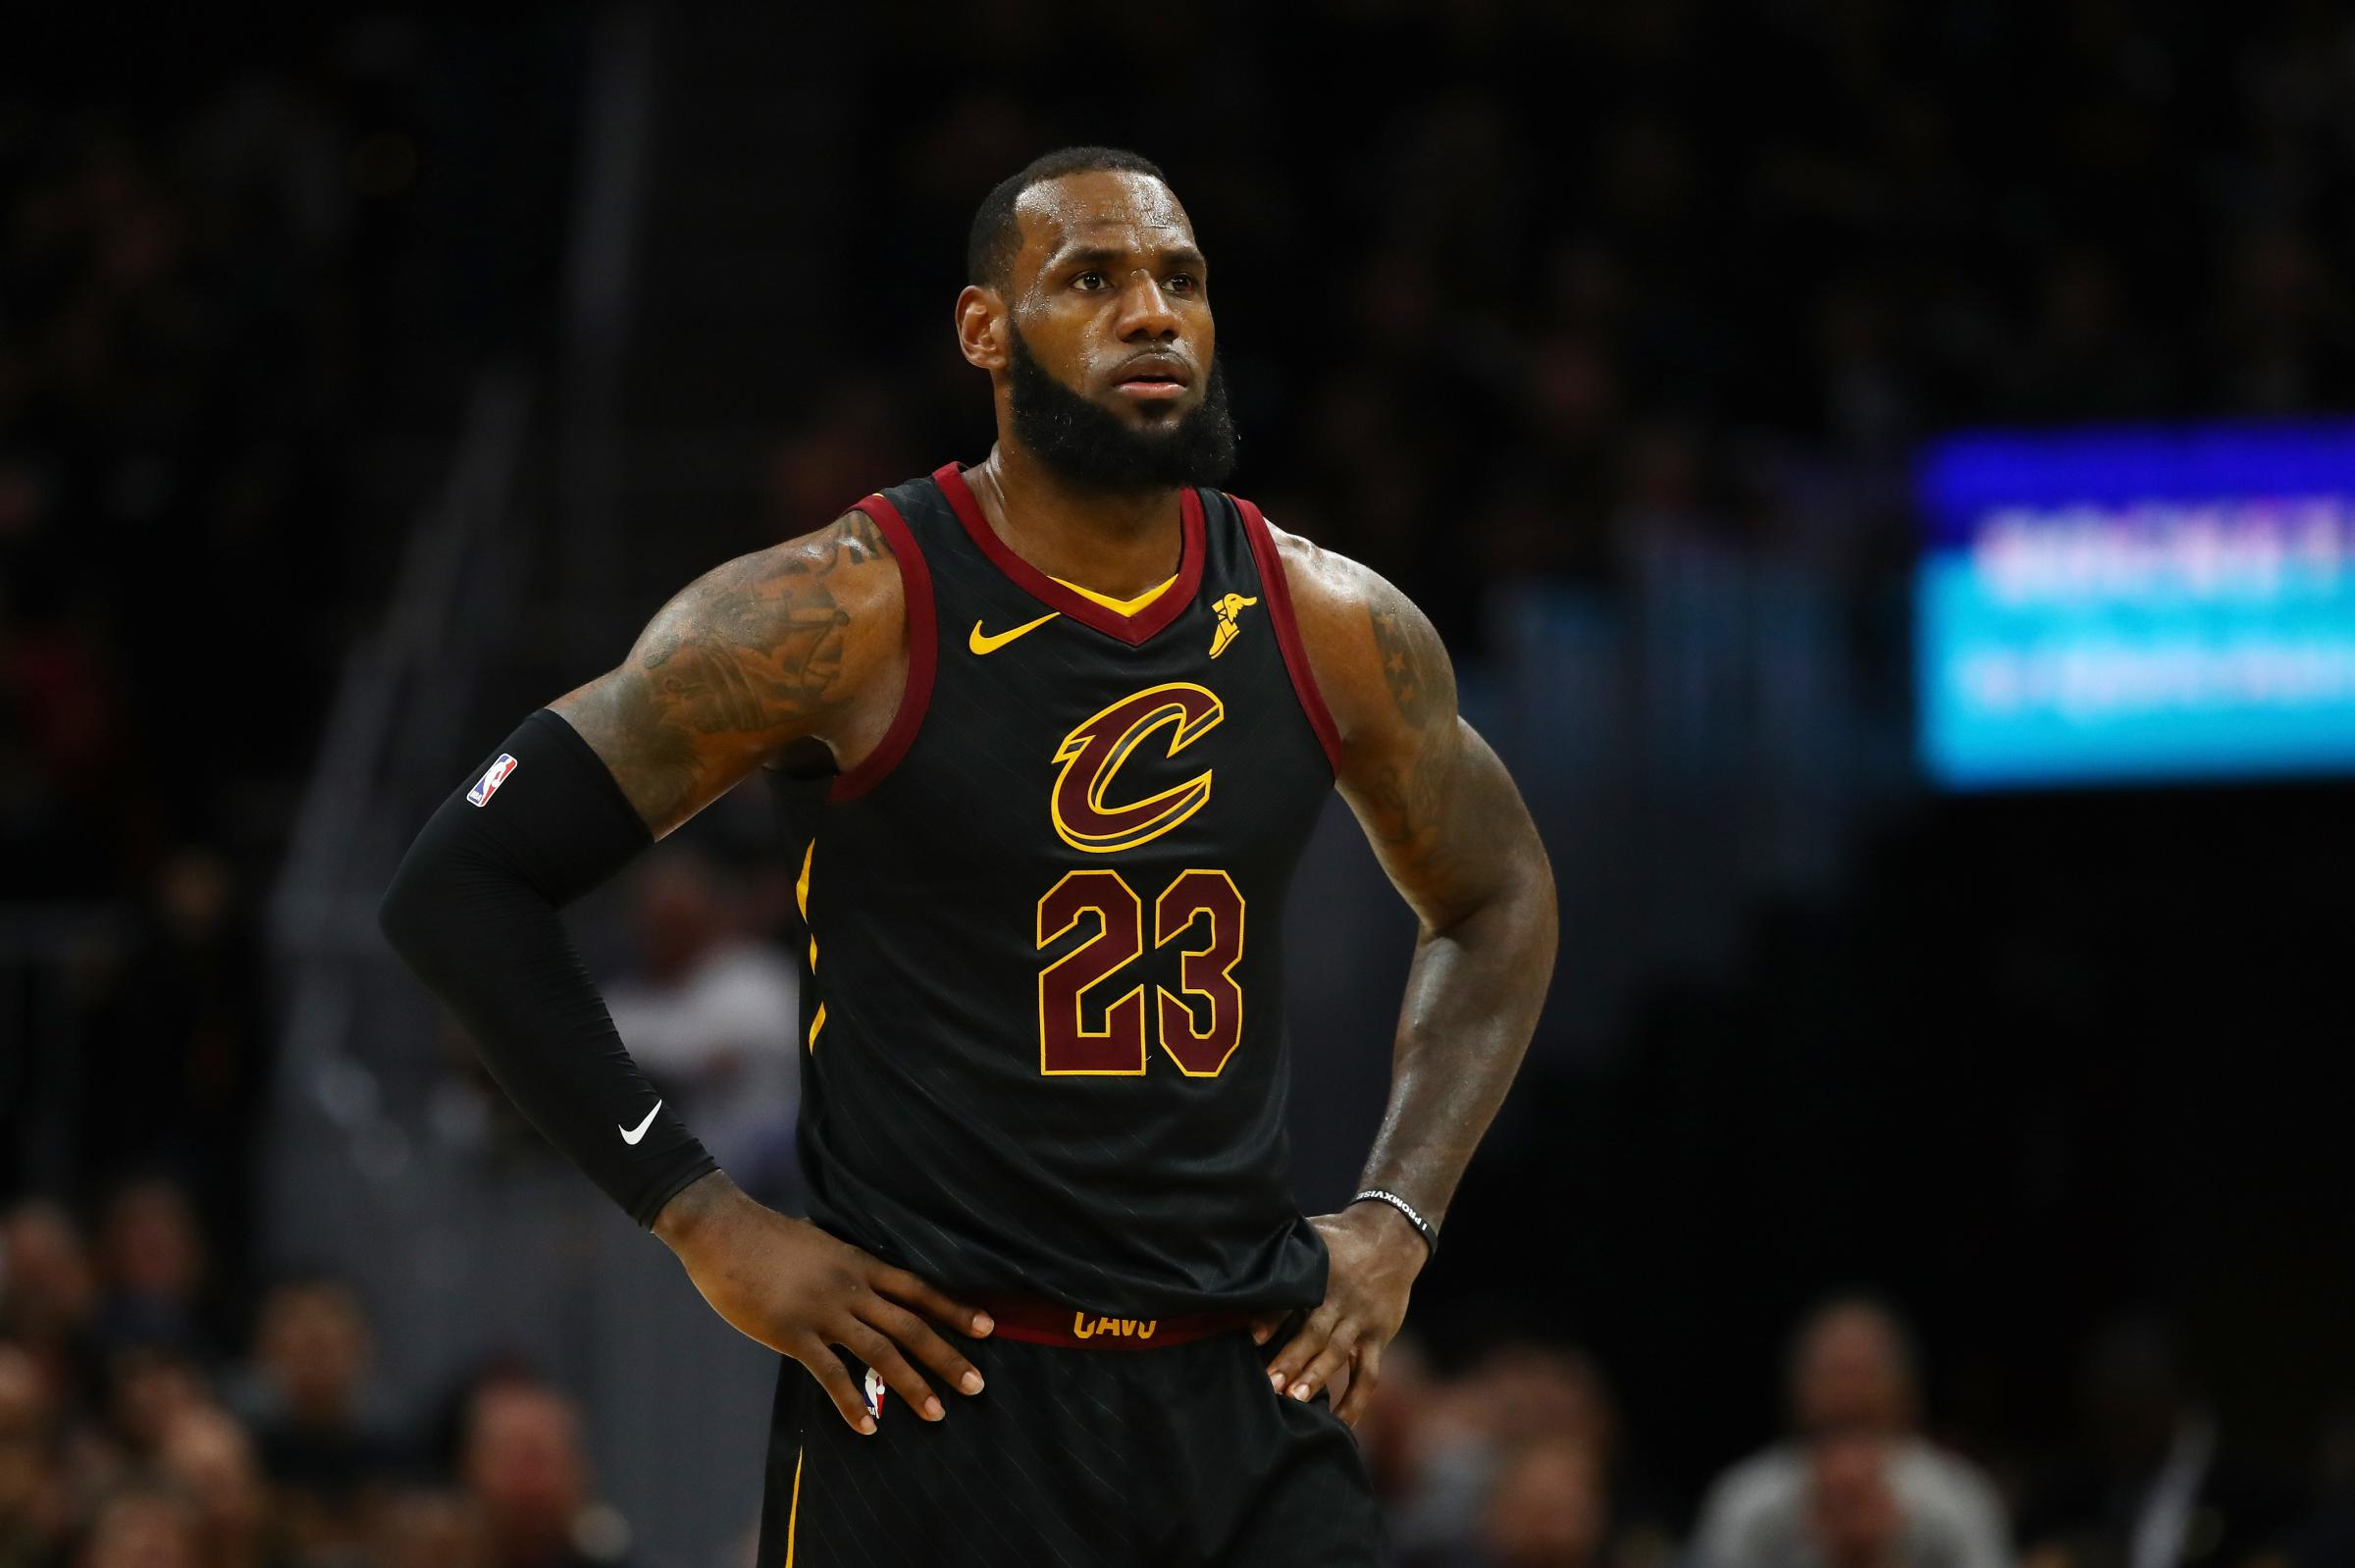 c5902cd98792 LeBron James To Leave Cleveland For The Los Angeles Lakers